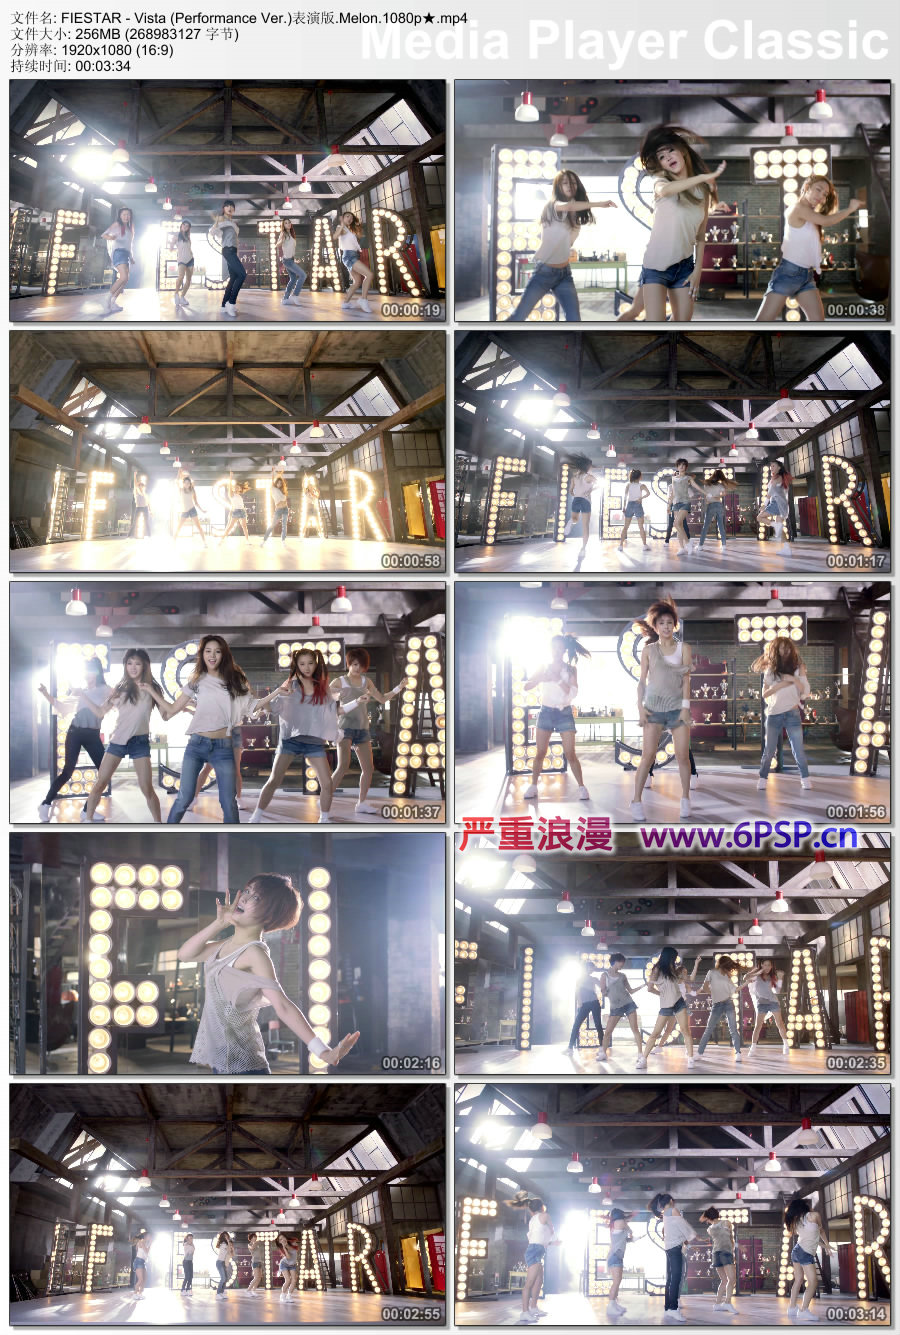 FIESTAR -[Vista](Performance Ver.).Melon.1080p.MP4.256M